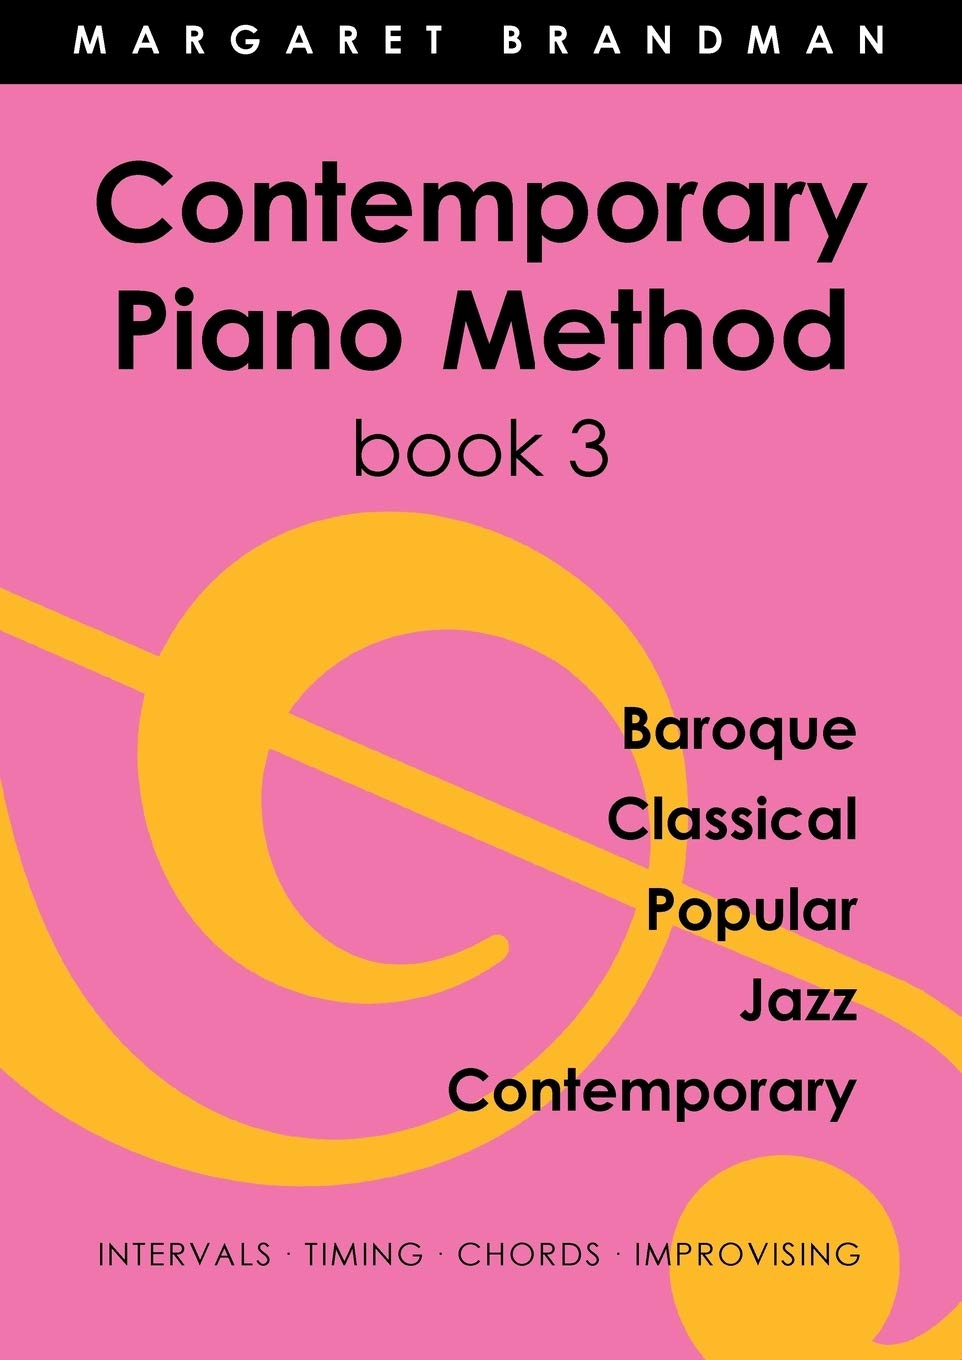 Contemporary Piano Method Book 3: Amazon.es: Brandman, Margaret Susan: Libros en idiomas extranjeros